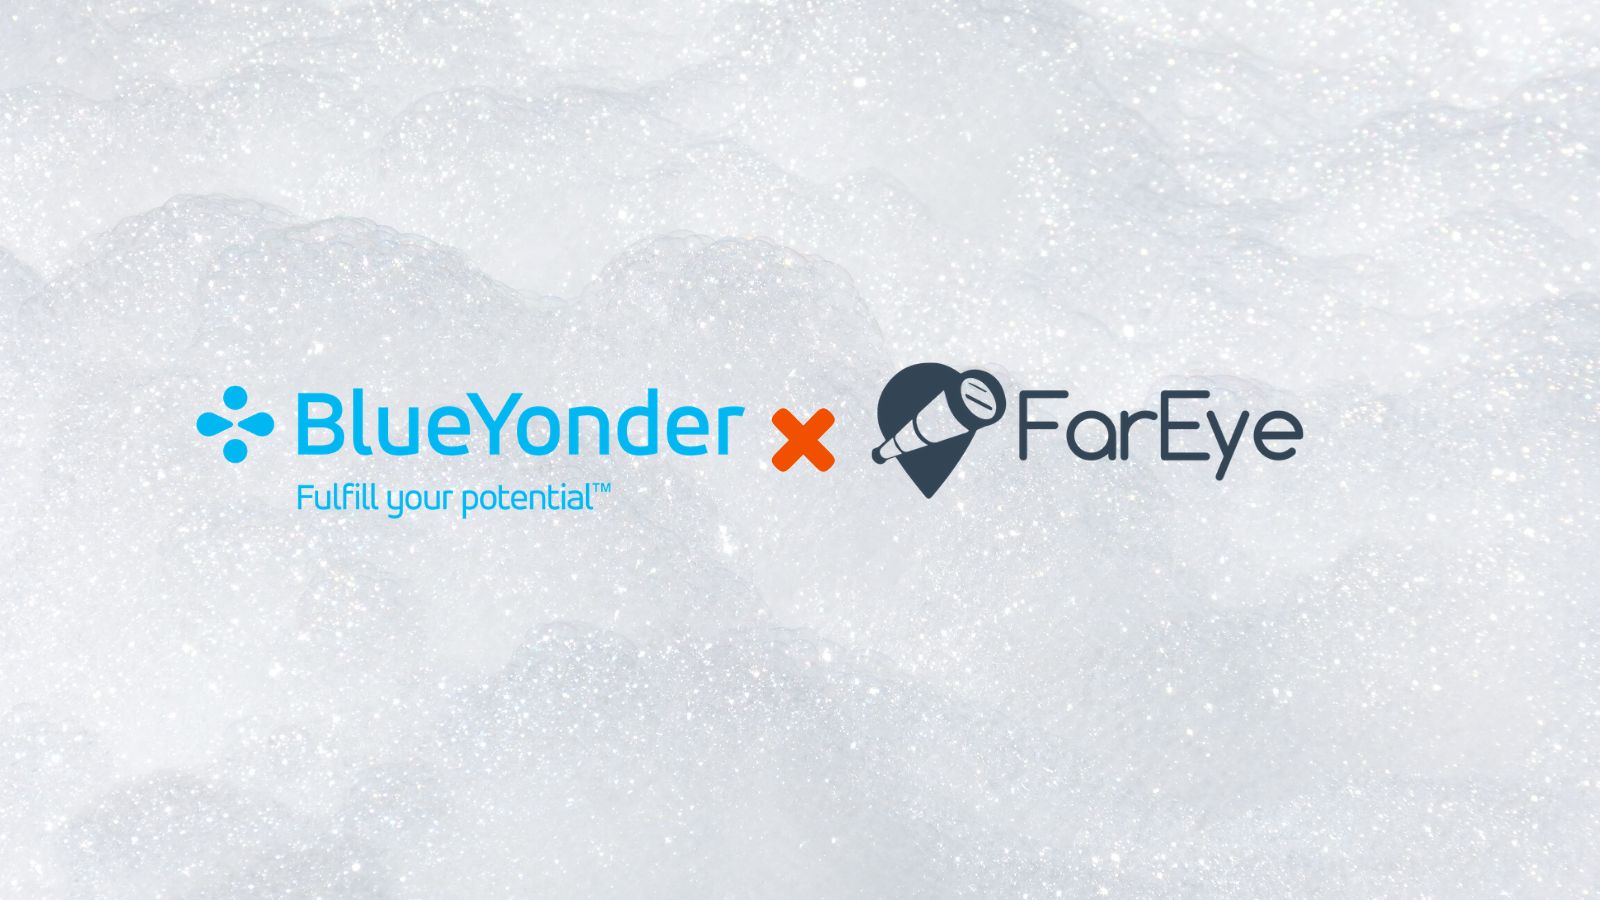 Blue Yonder partners with FarEye